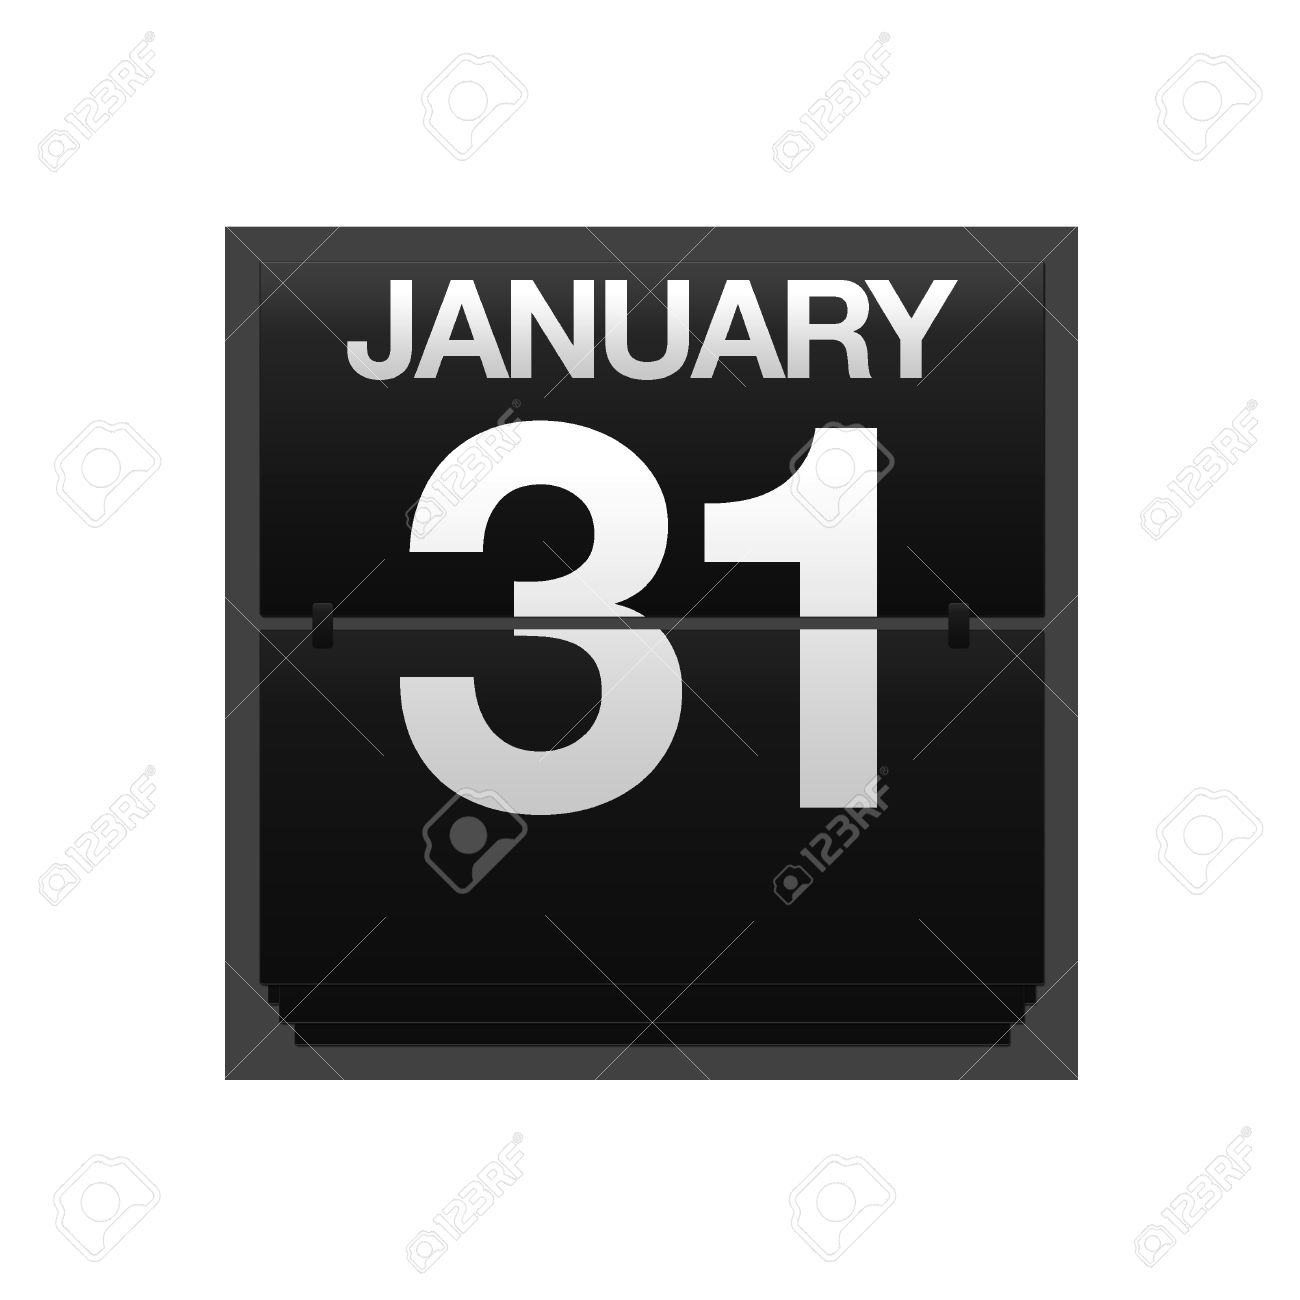 January 31 calendar clipart vector transparent download Illustration With A Counter Calendar January 31 Stock Photo ... vector transparent download